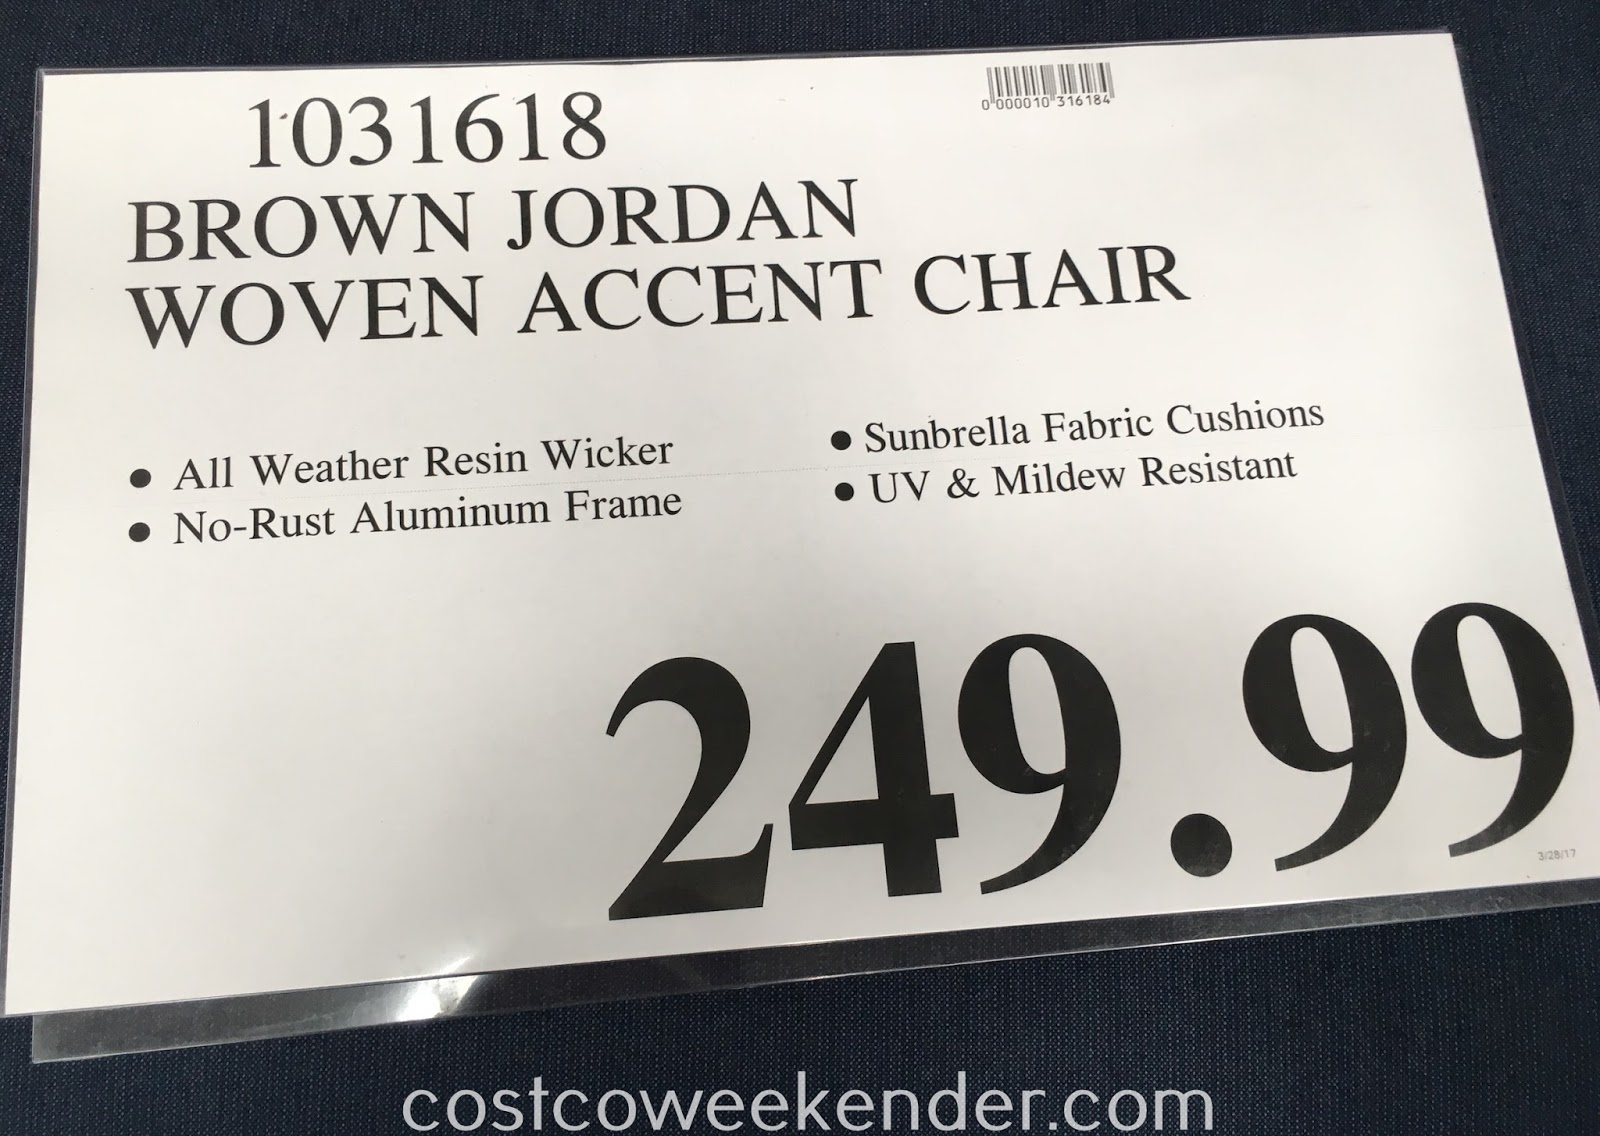 Deal for the Brown Jordan Woven Accent Chair at Costco